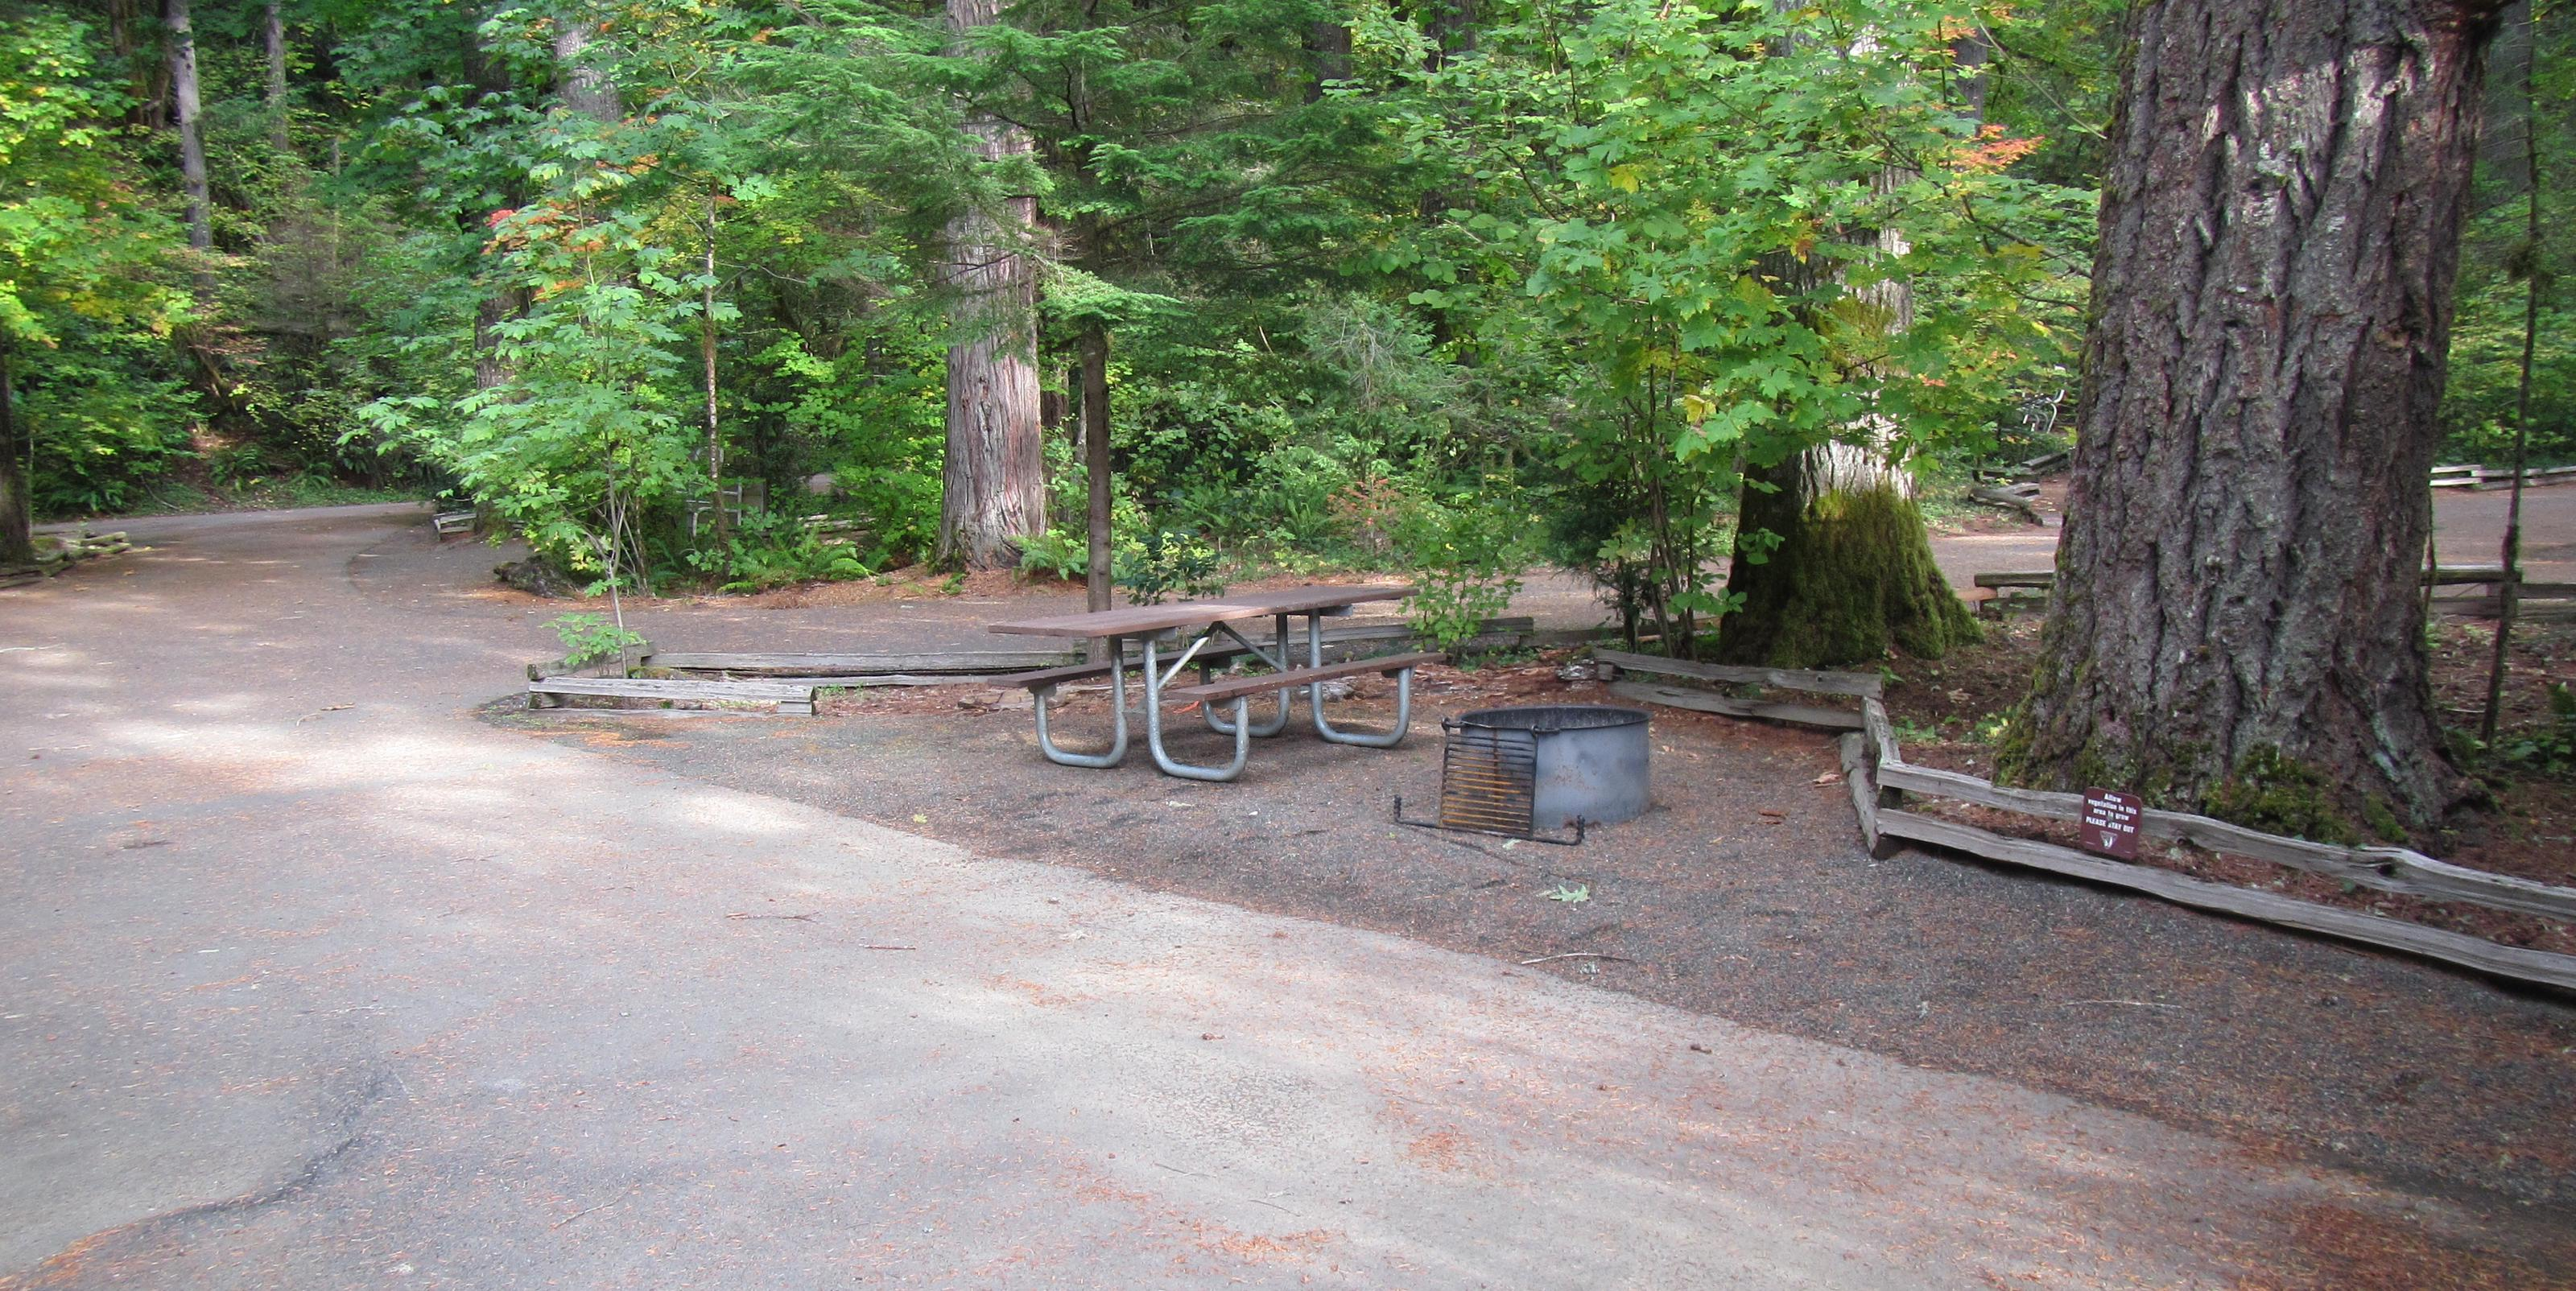 Site includes picnic table and fire ring